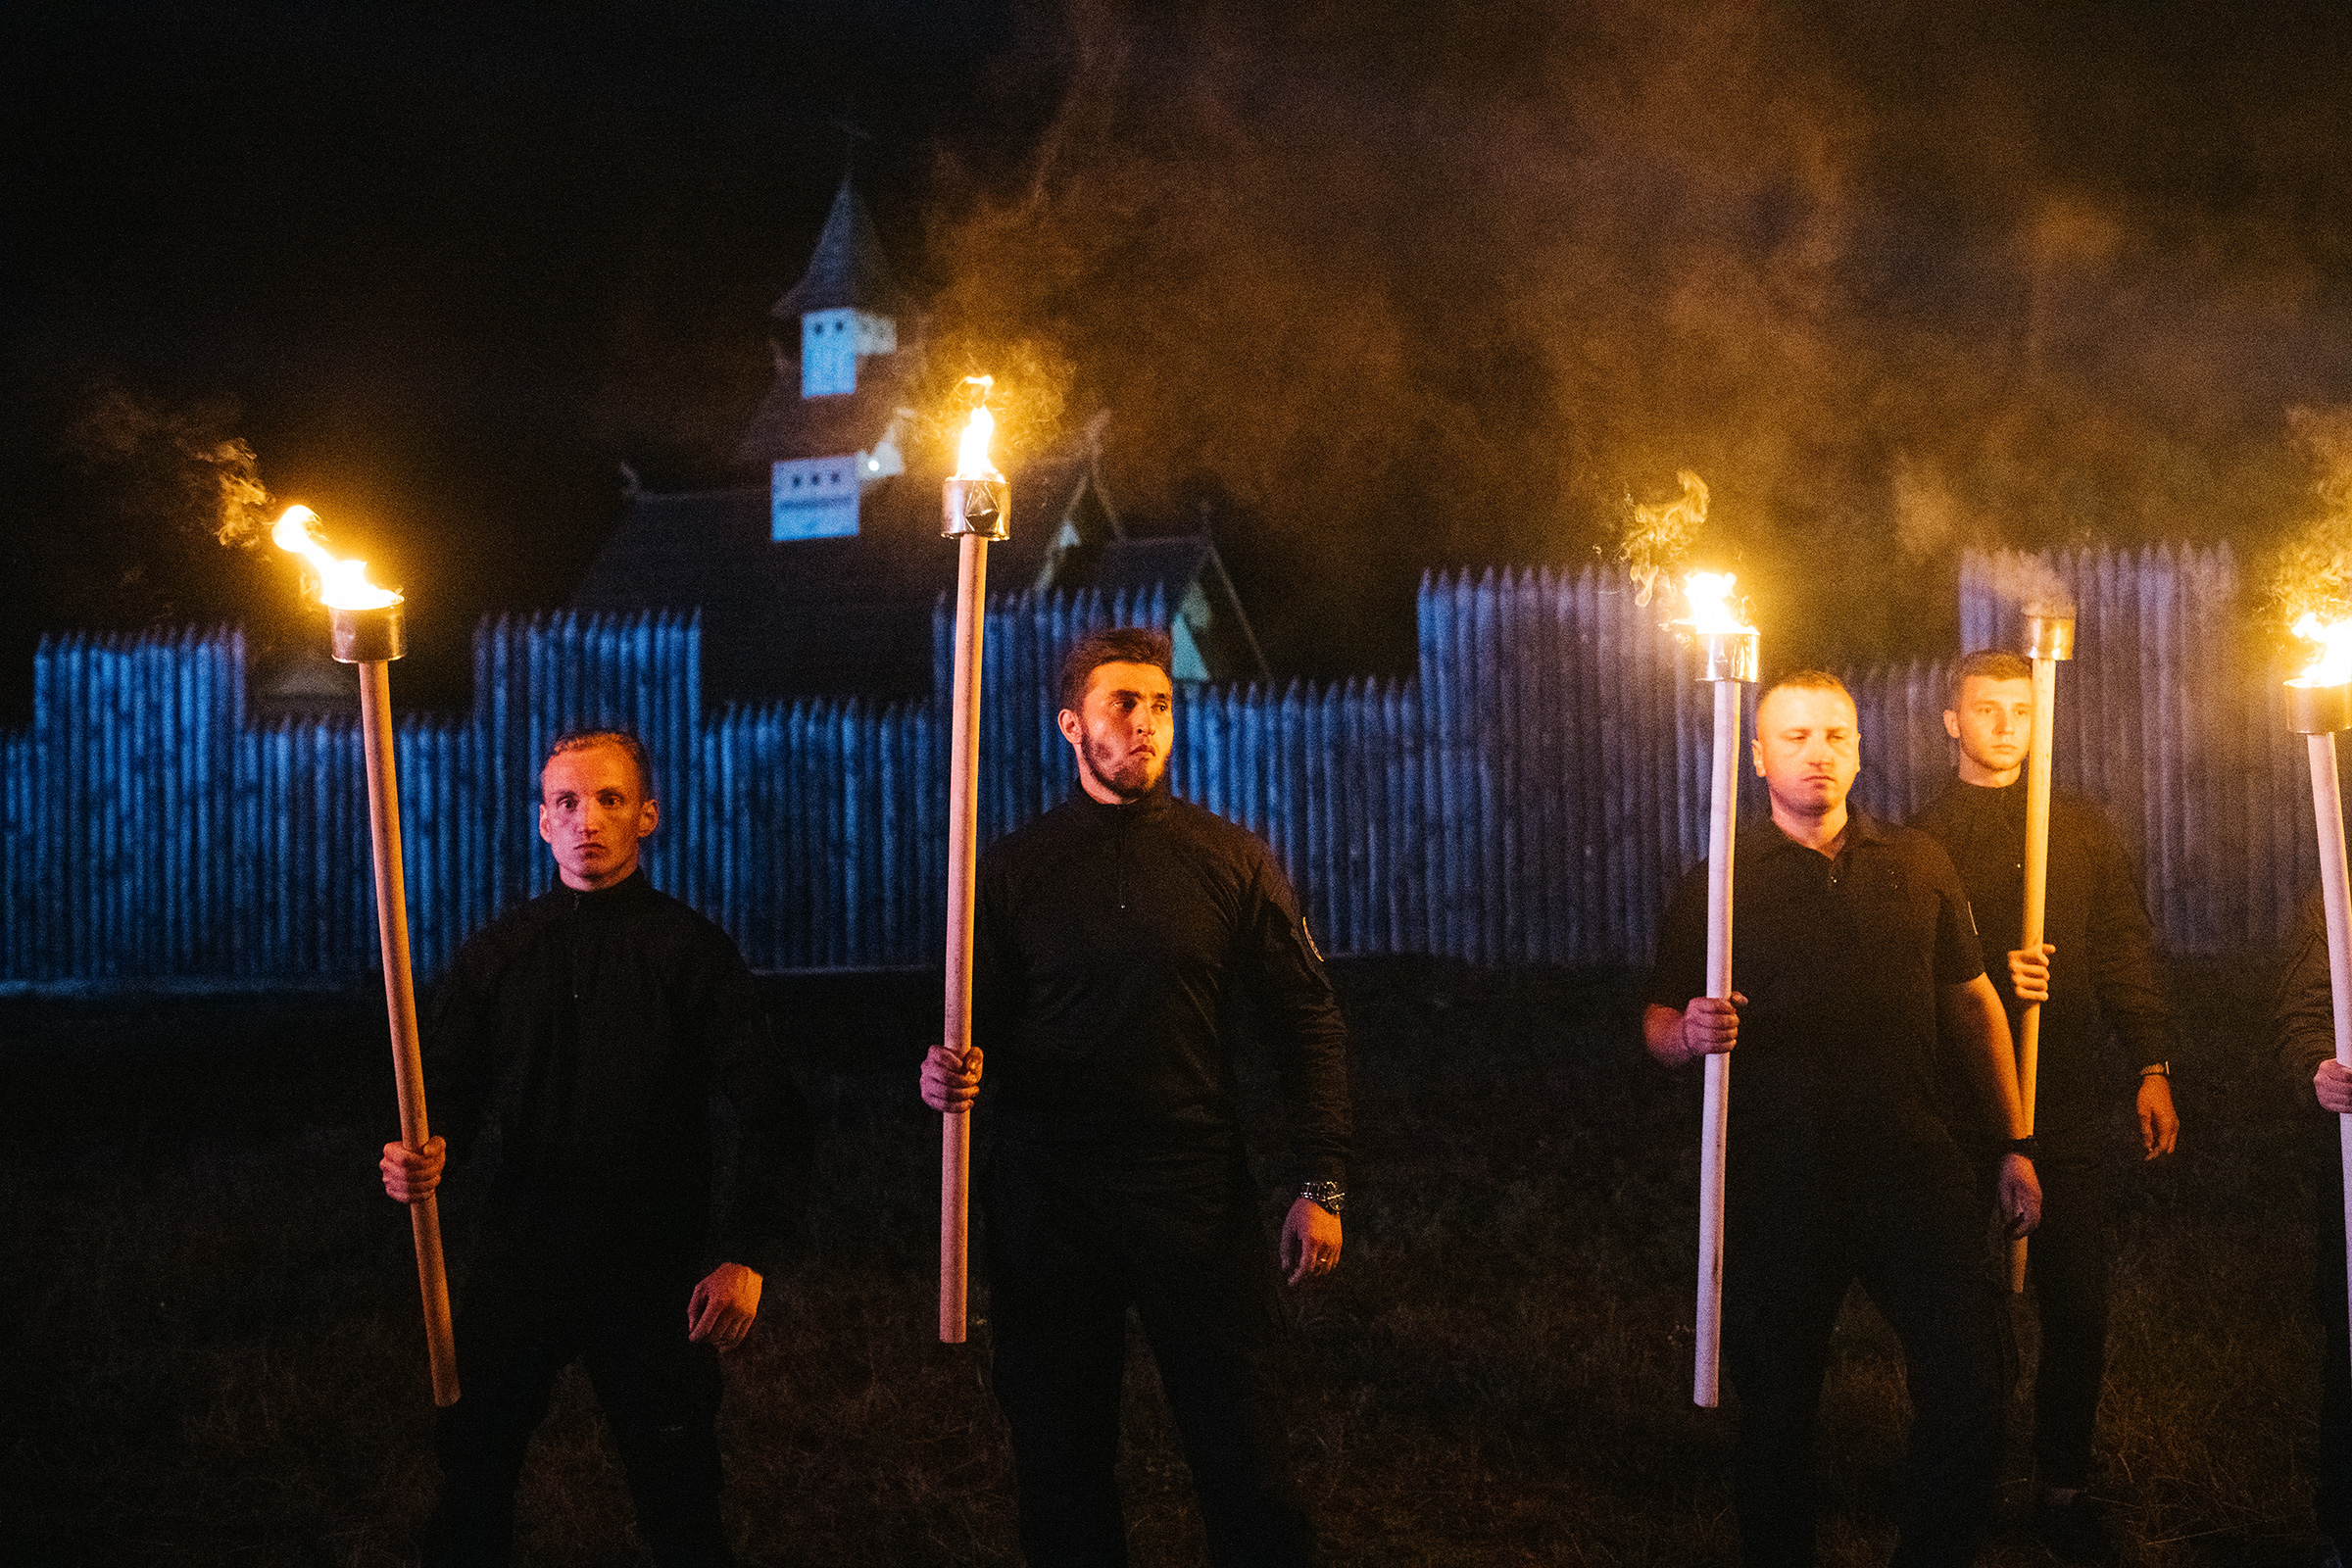 Azov members preparing to take part in a torchlit march at the Young Flame festival.